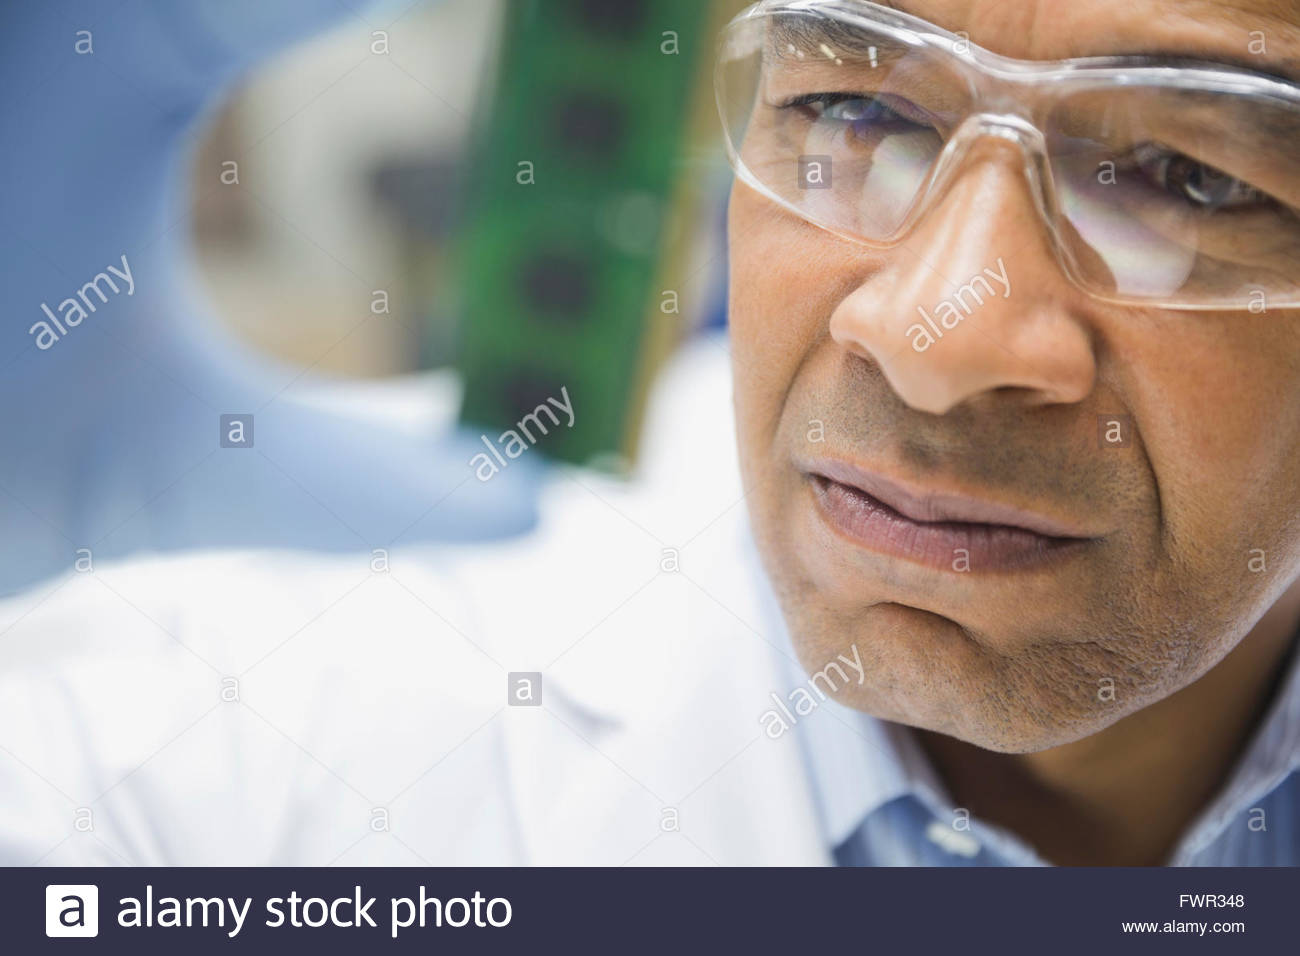 Technician looking at computer chip - Stock Image